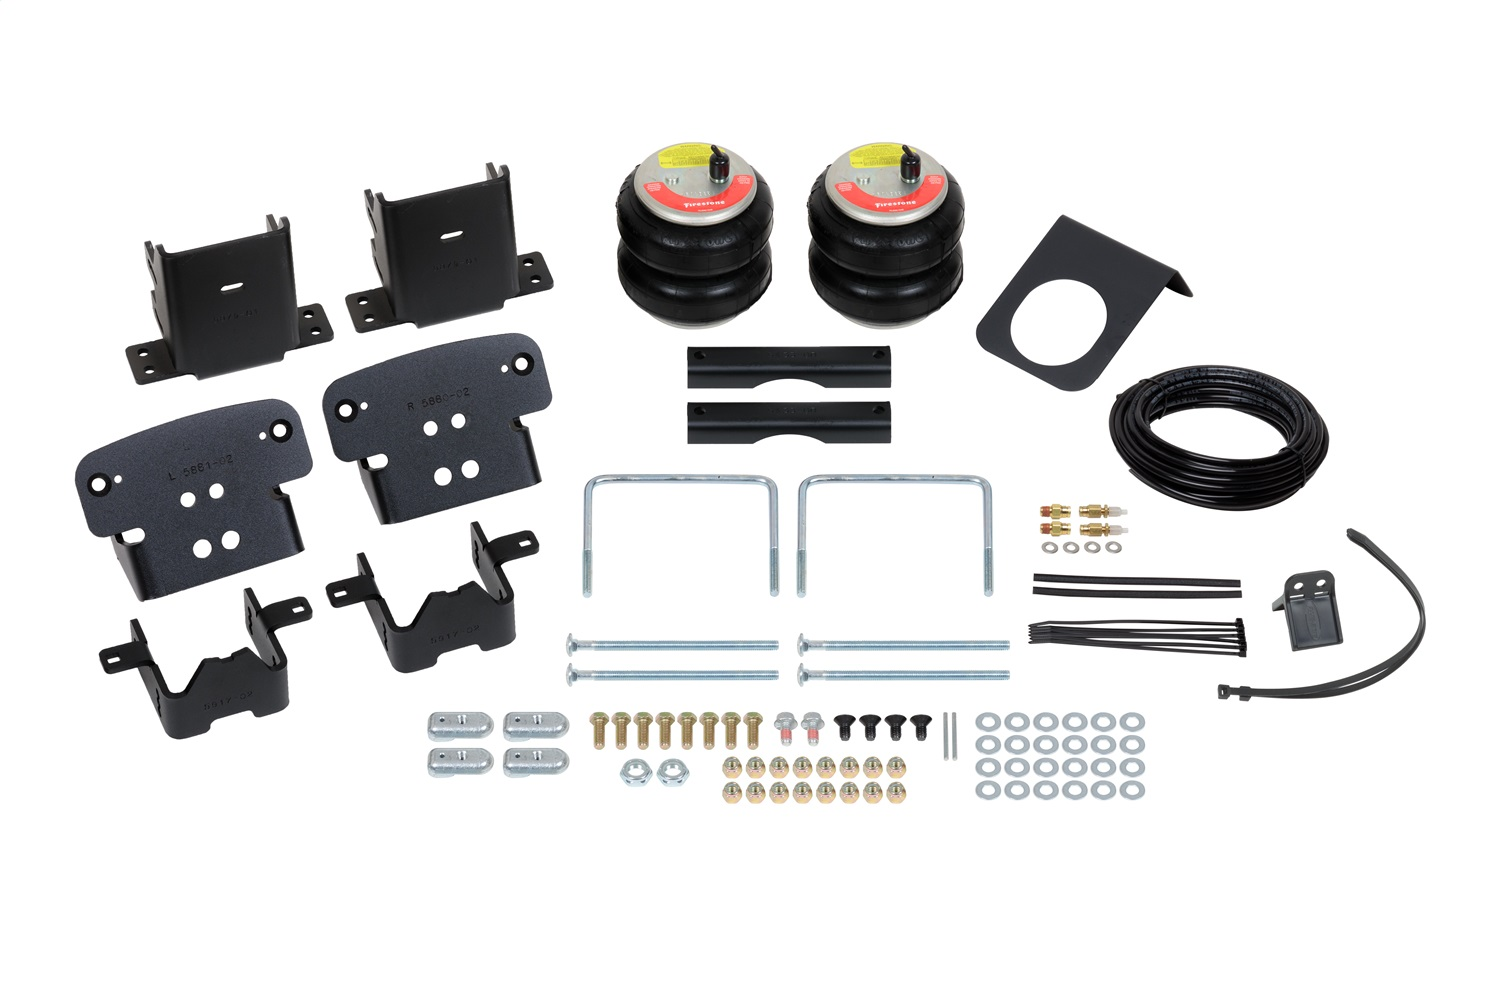 Firestone Ride-Rite 2712 RED Label Ride Rite Extreme Duty Air Spring Kit